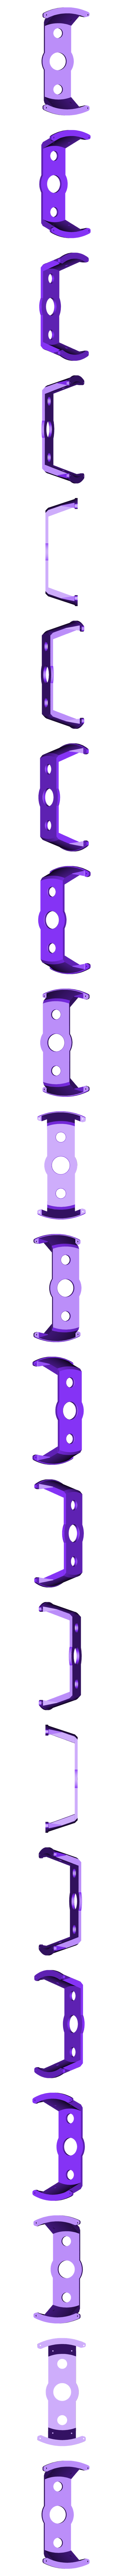 Body-Case-Assy101.stl Download free STL file Main Gear Box, Helicopter driven by 2-Engines • Object to 3D print, konchan77